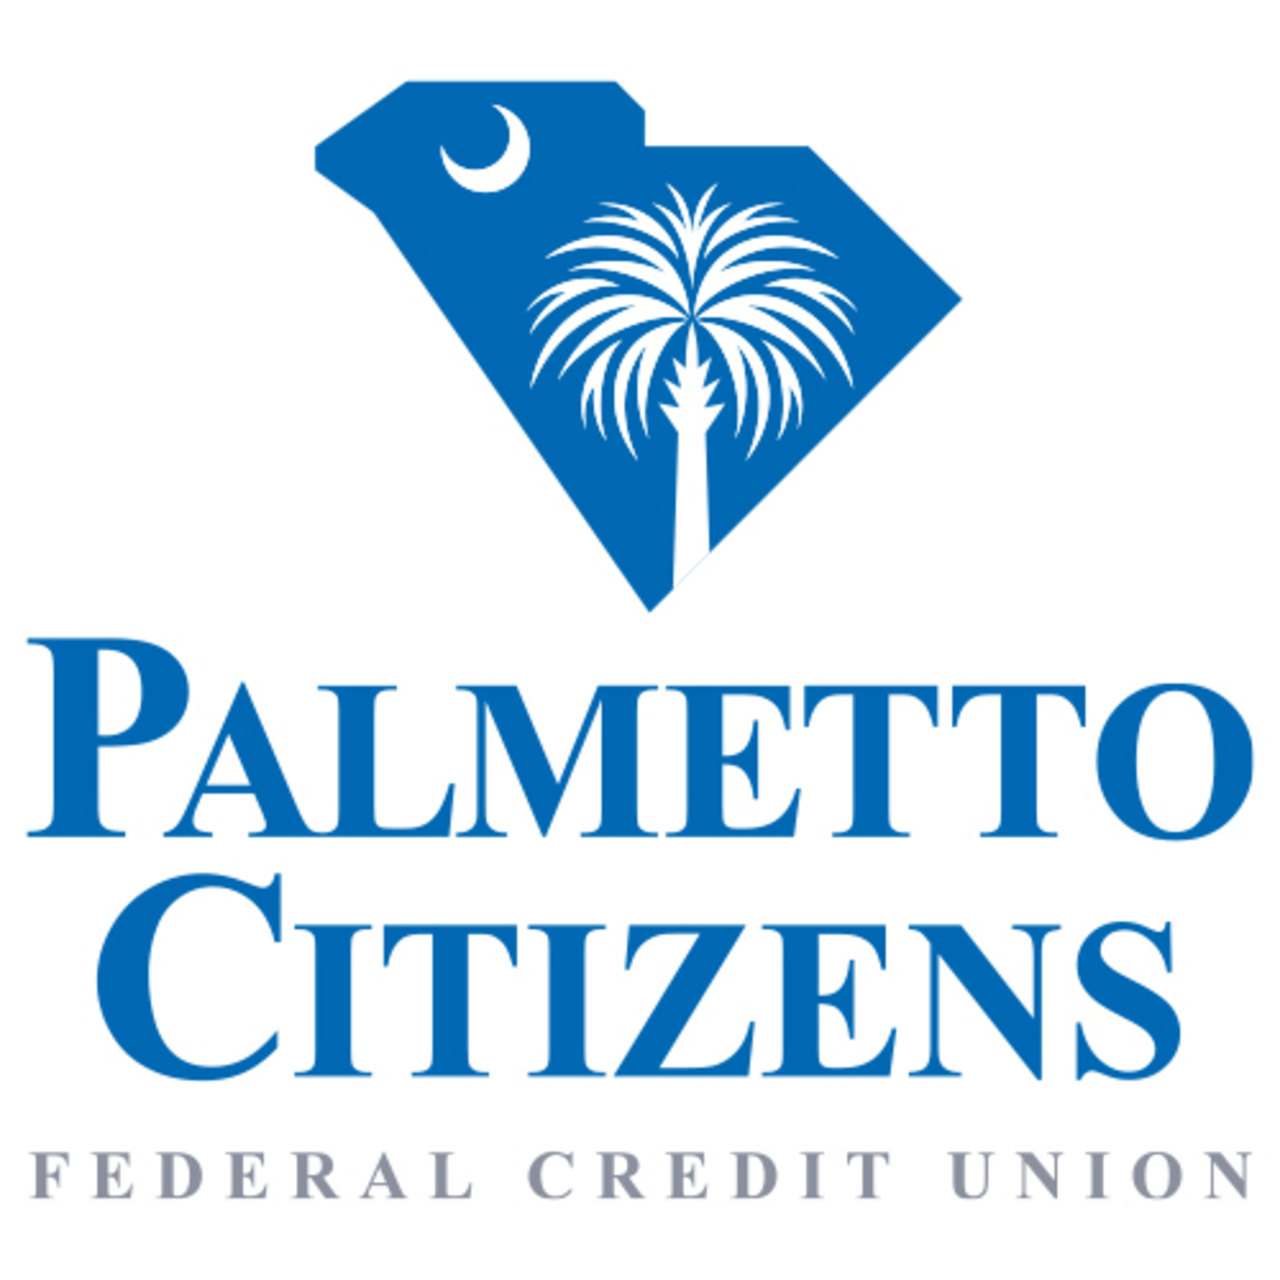 Palmetto Citizens Federal Credit Union Support Harvest Hope Food Bank